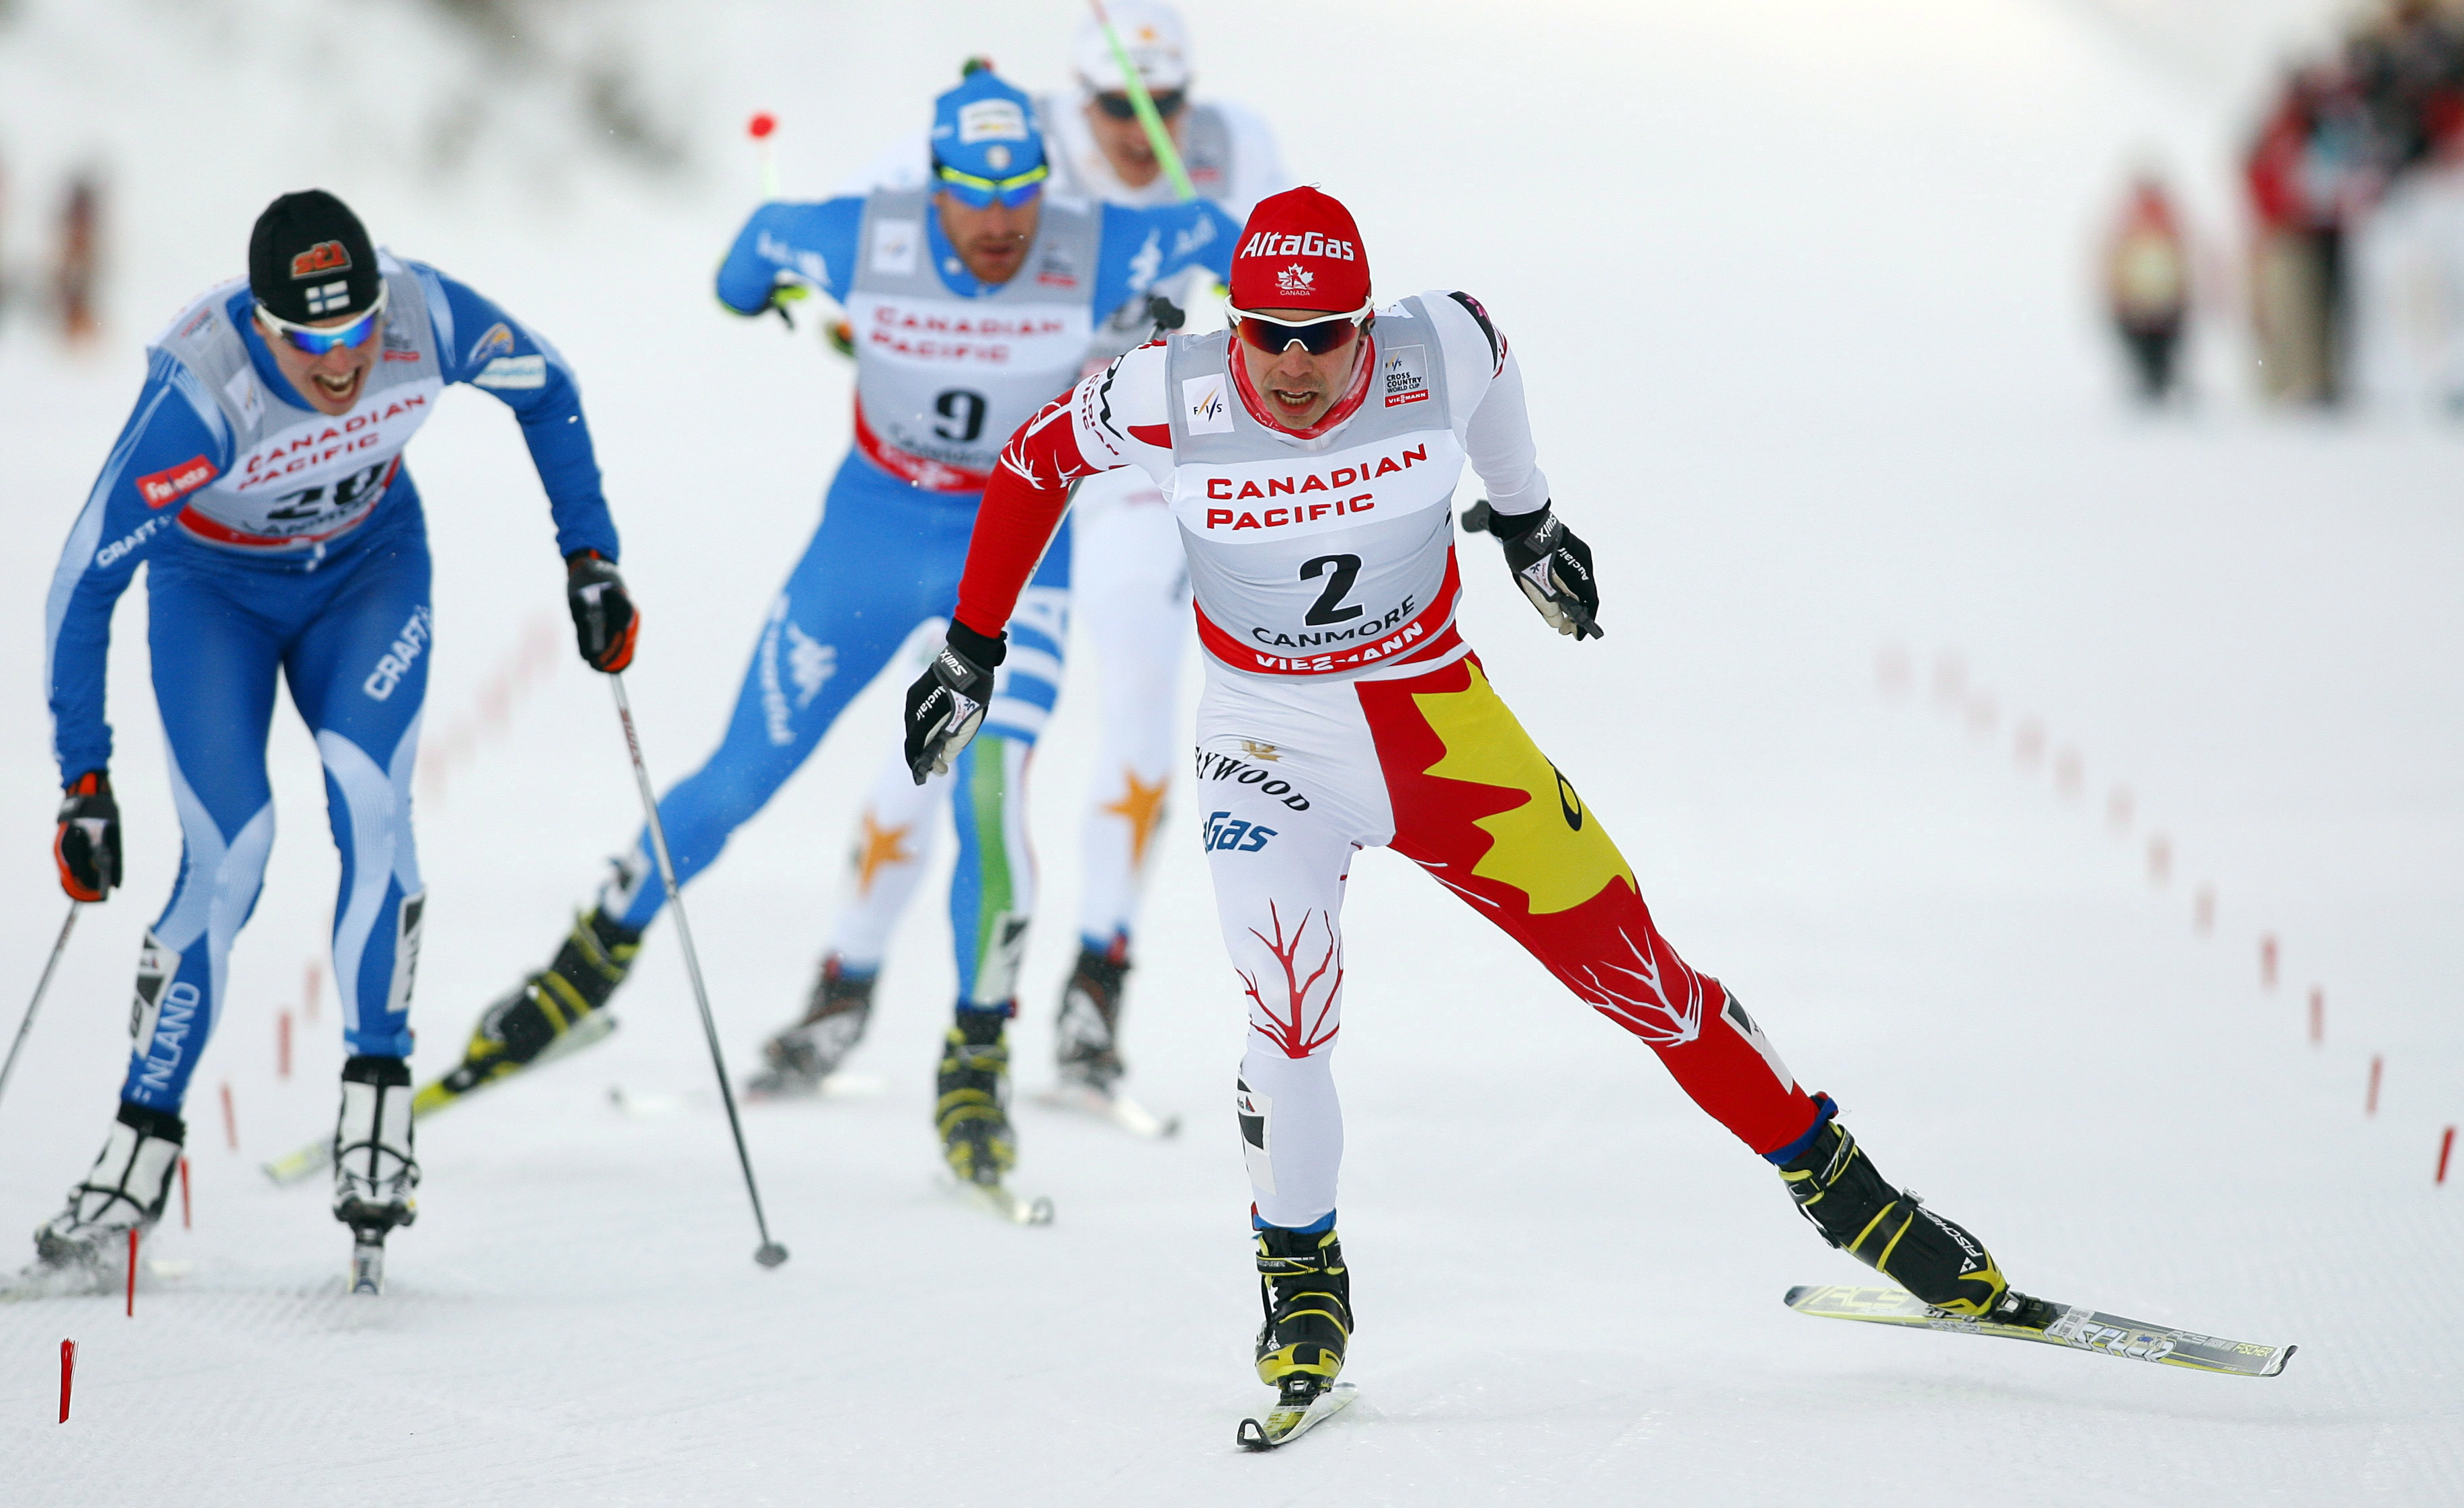 Jesse Cockney skiing with competitors trailing behind him